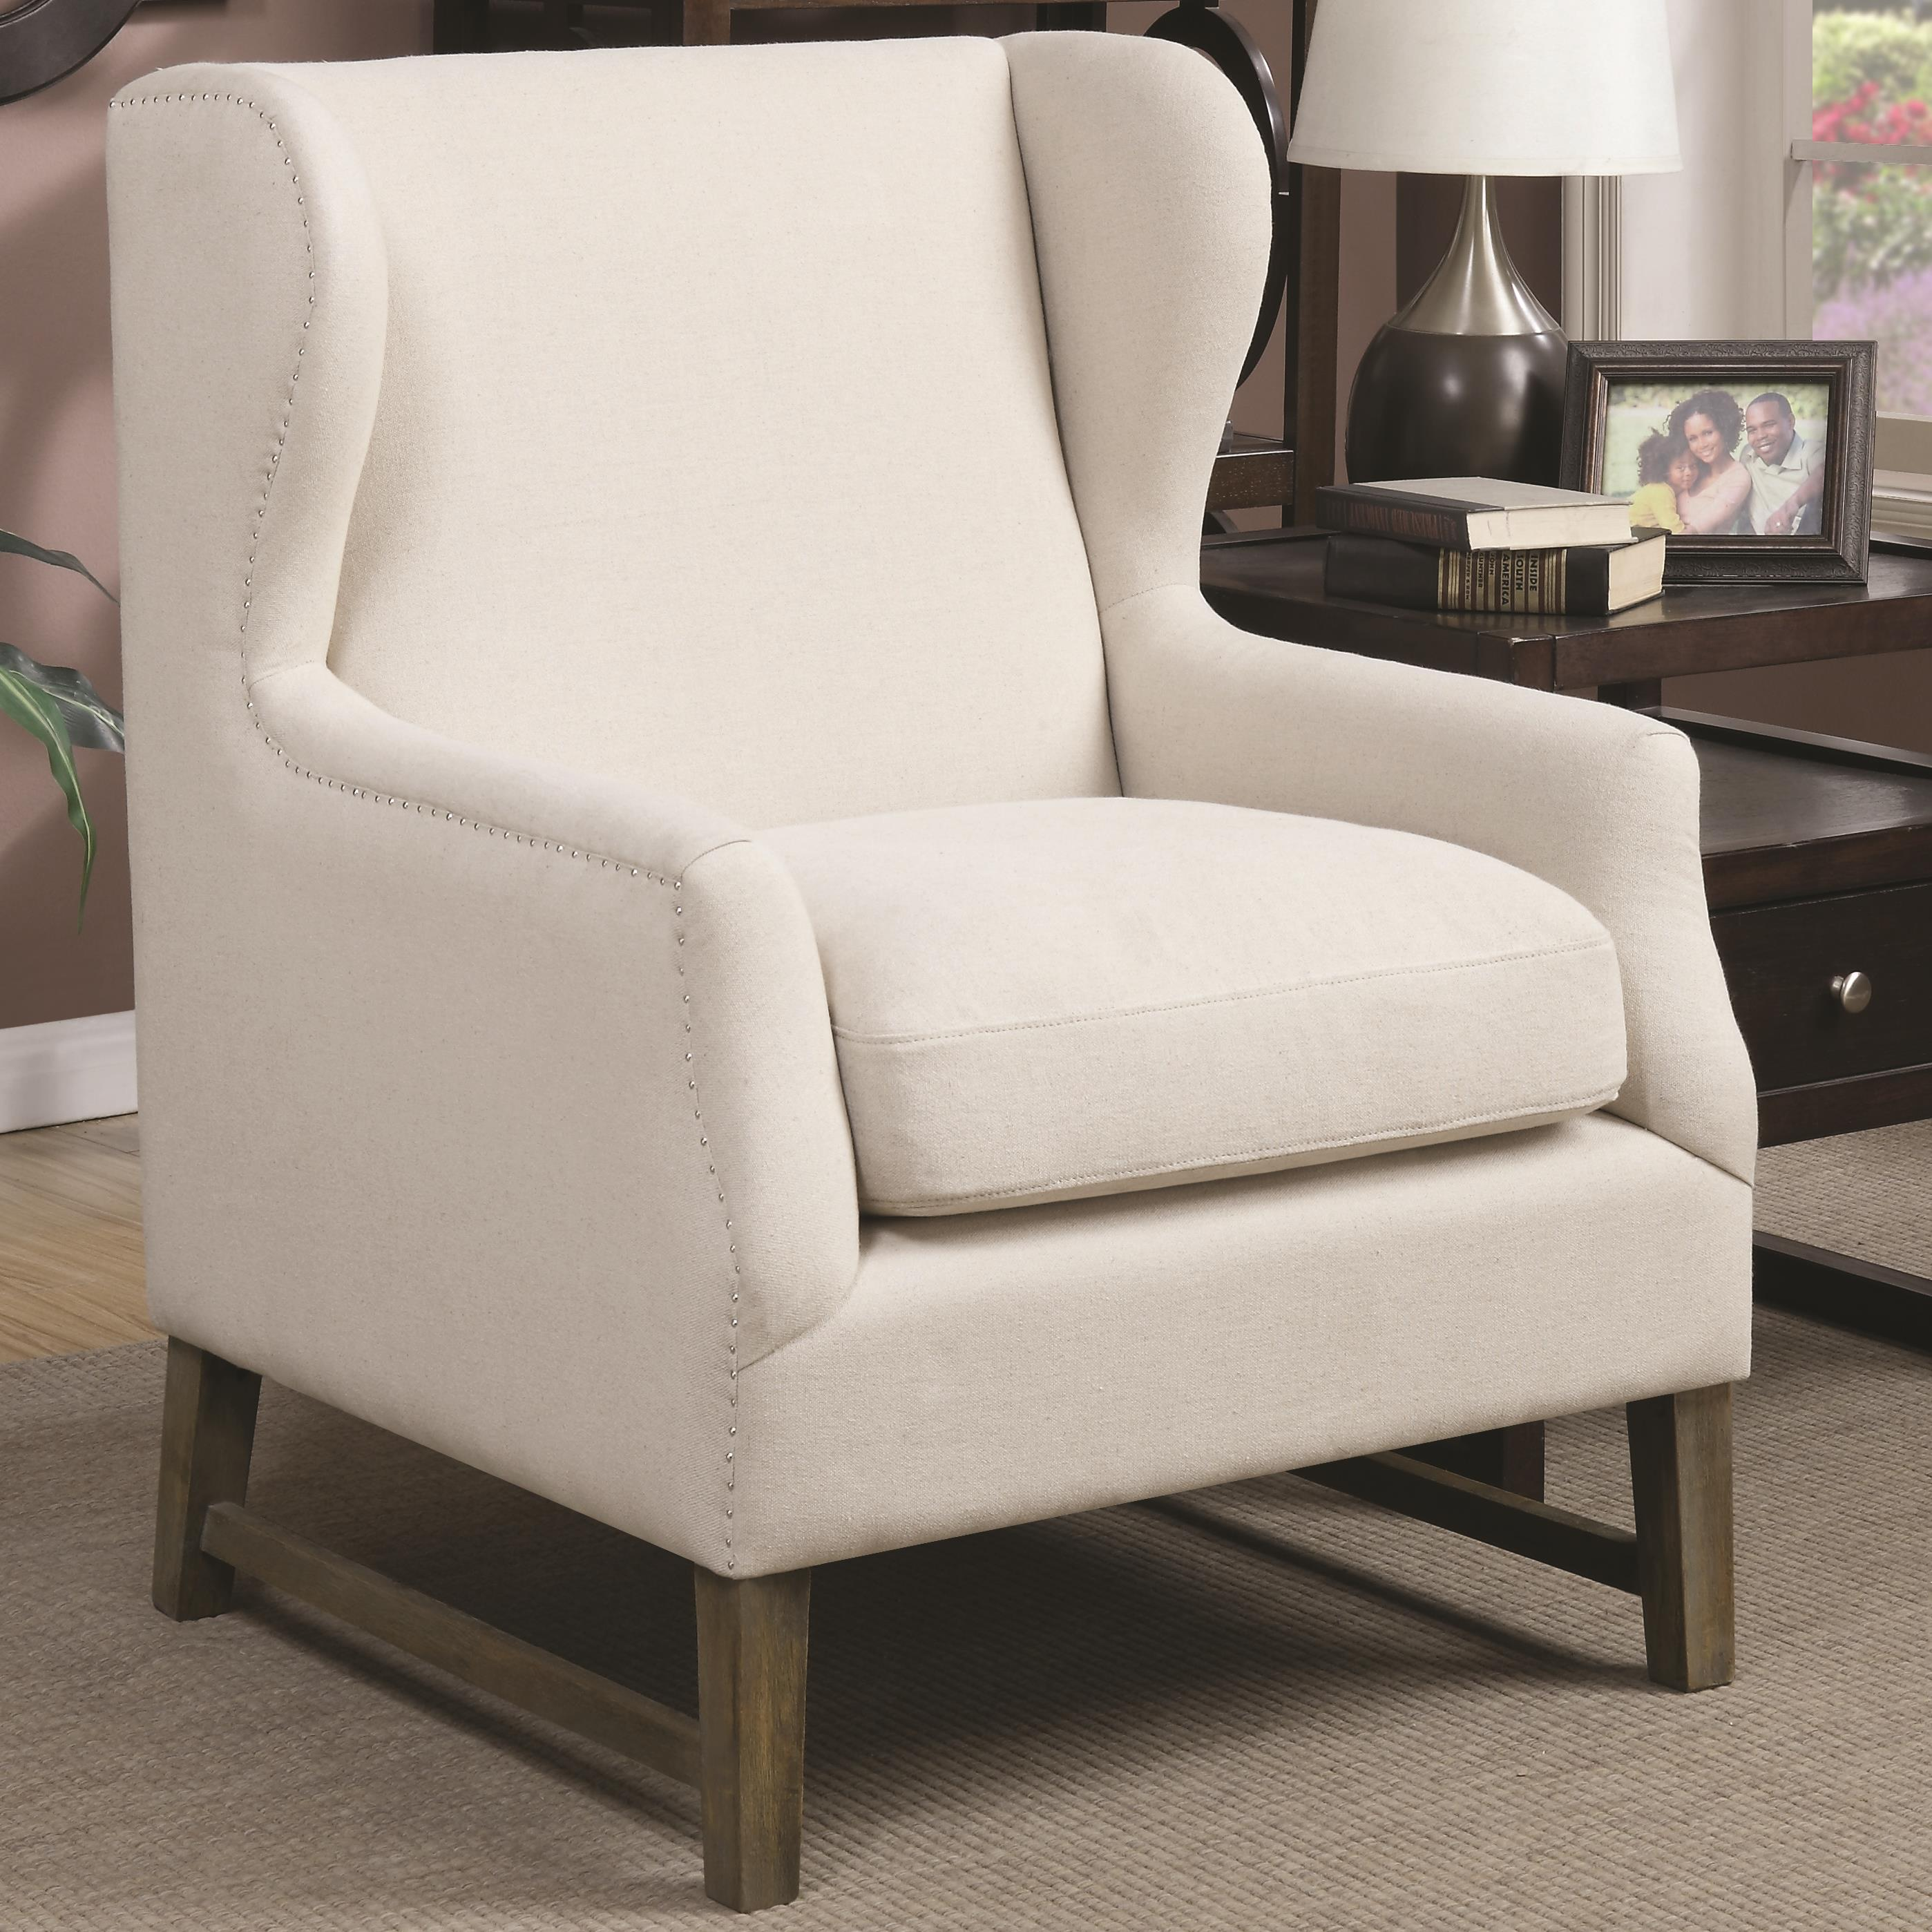 Coaster Accent Seating Accent Chair with Wing Back Design